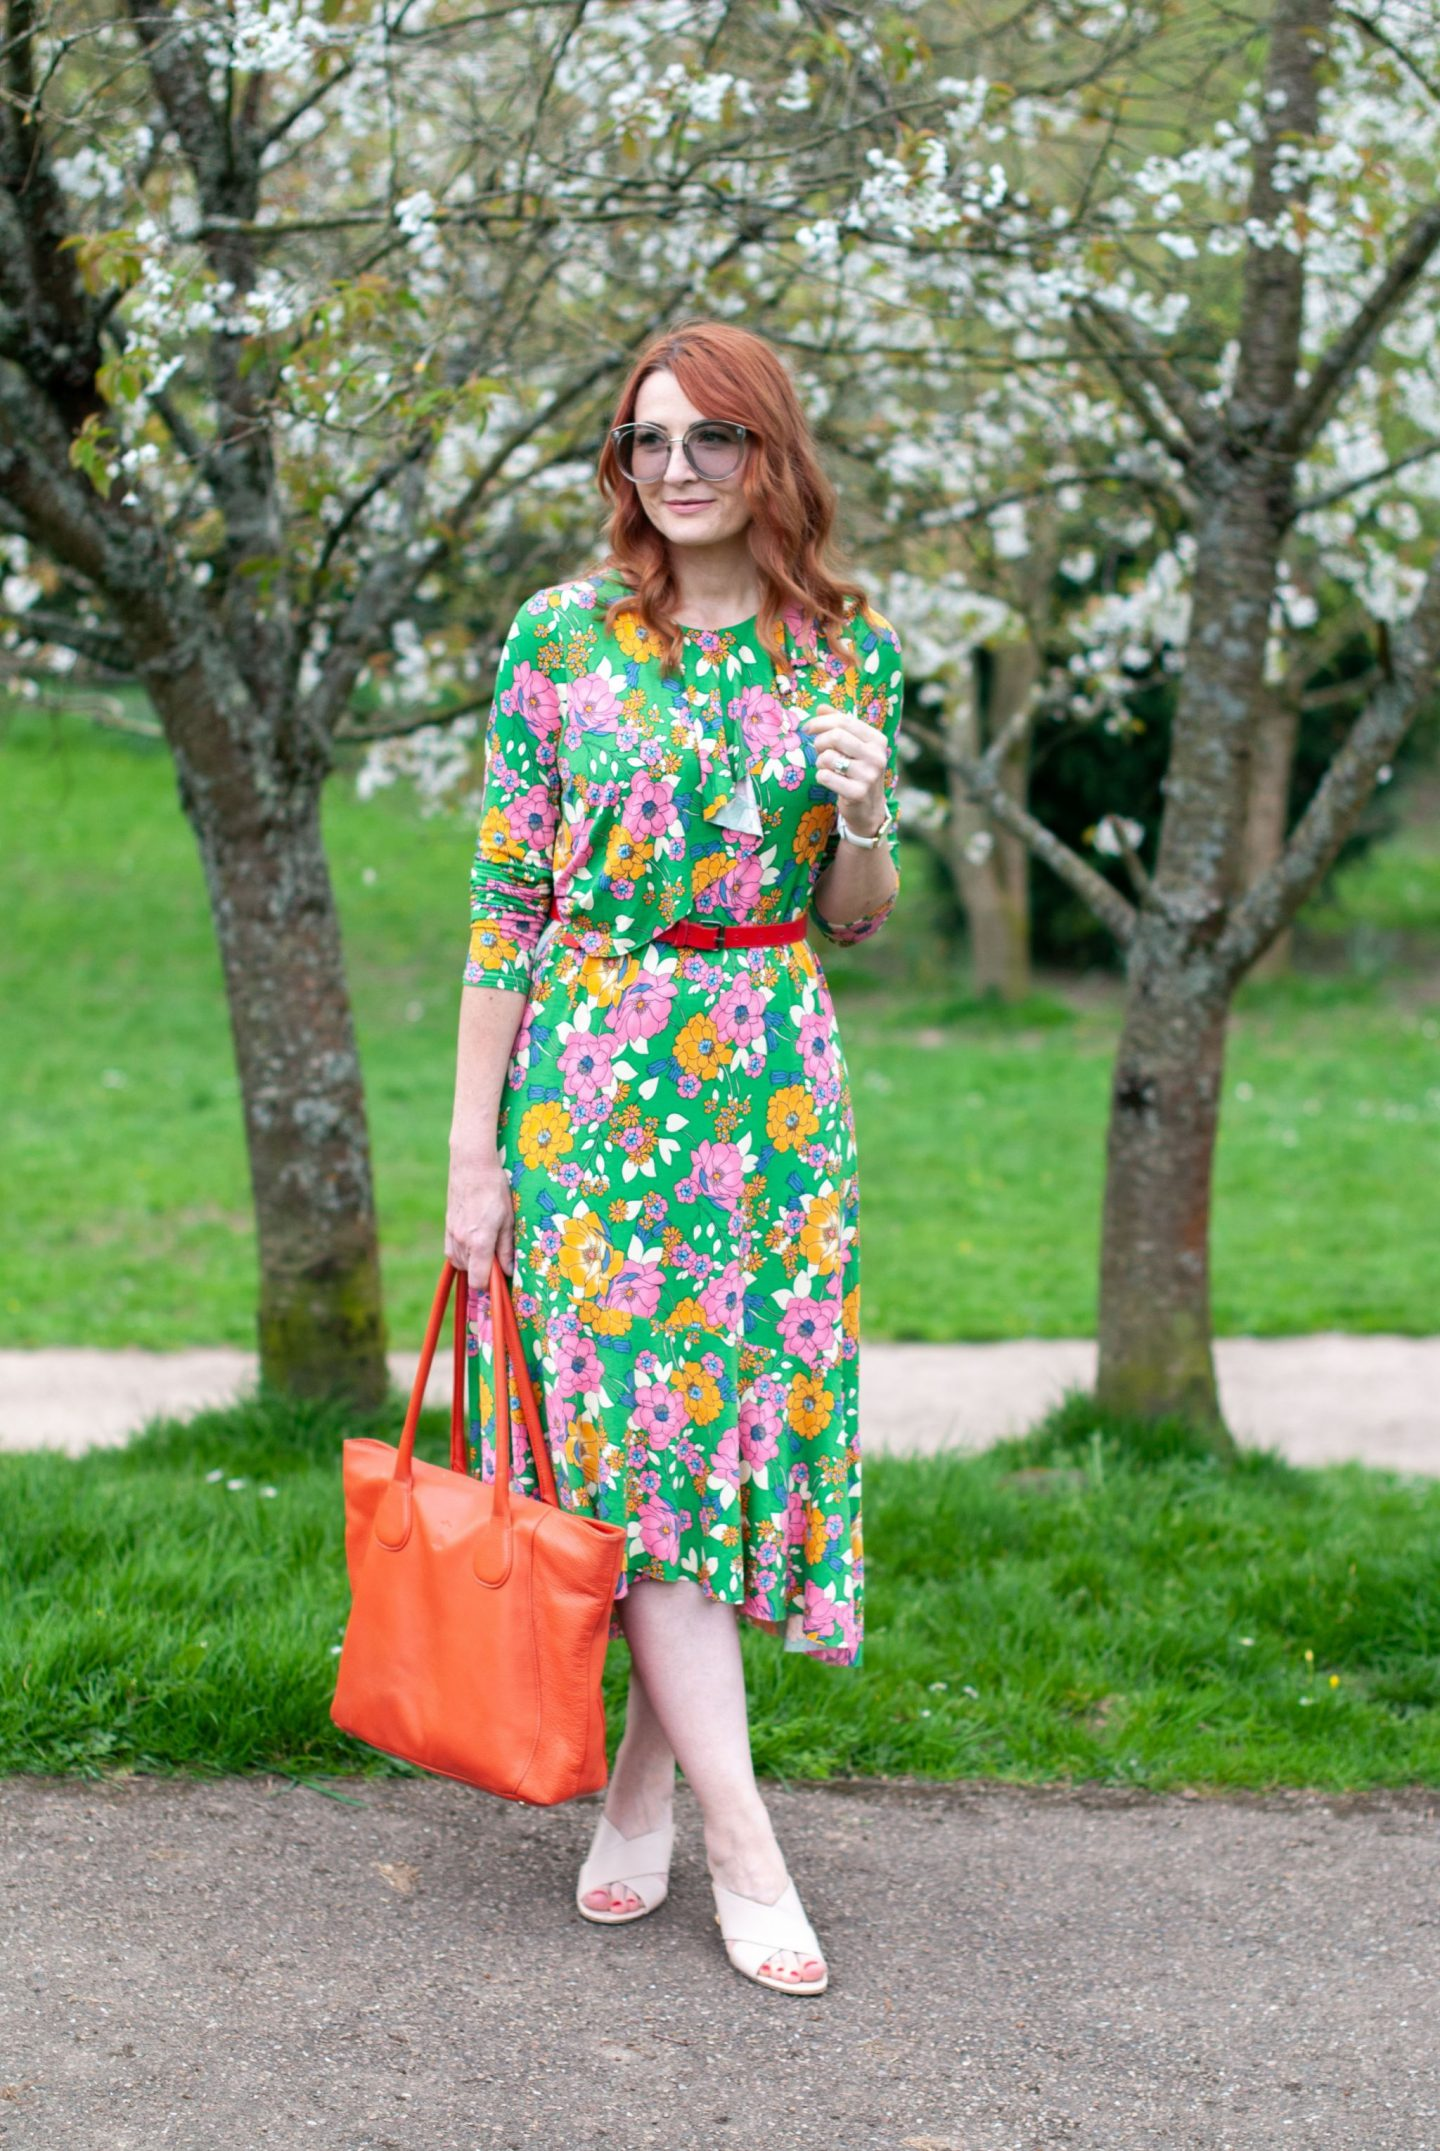 My All Time Favourite Summer Outfits: Floral asymmetric dress | Not Dressed As Lamb